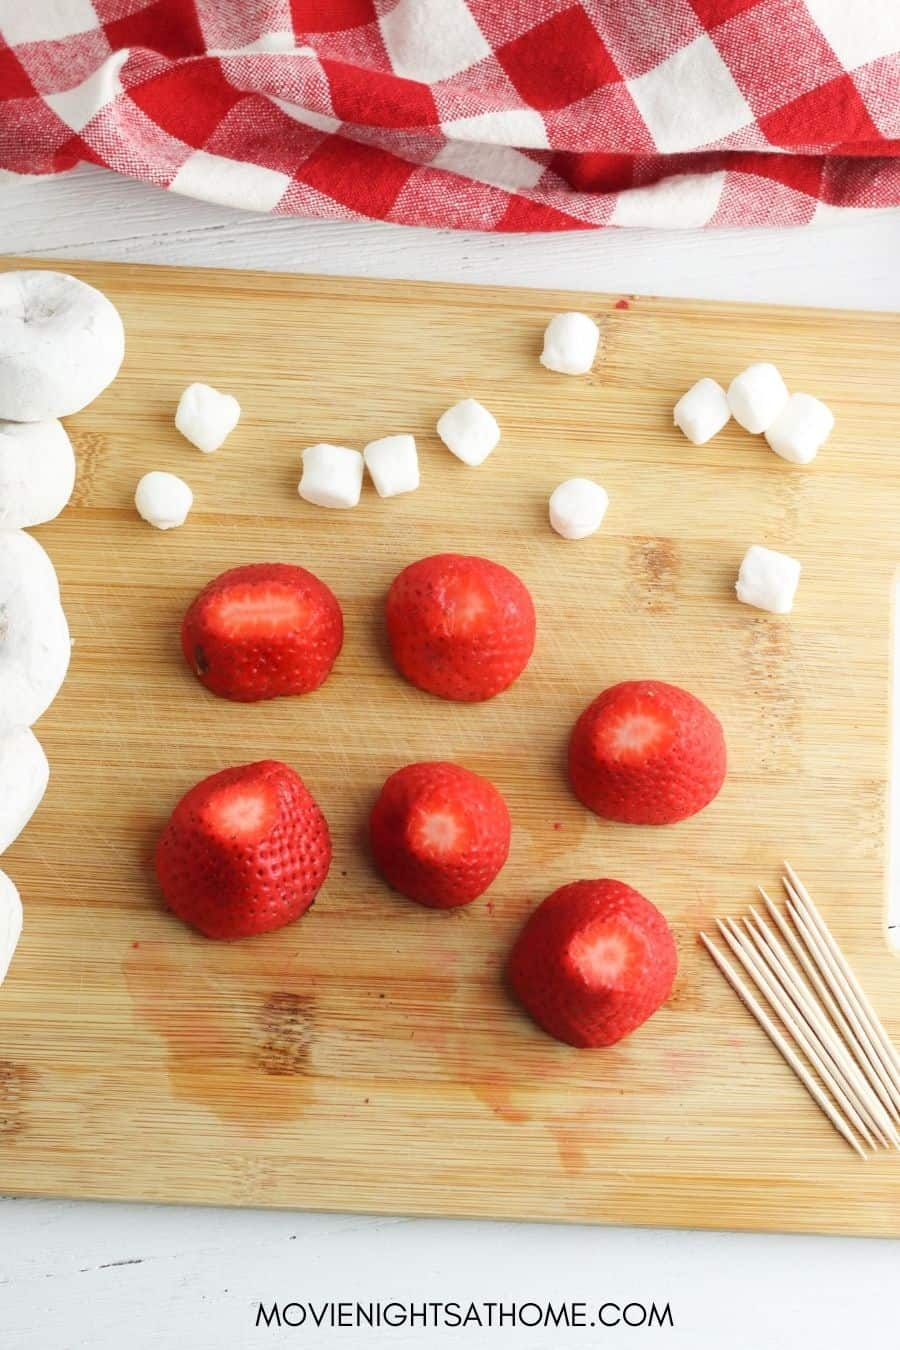 You'll need strawberries, mini marshmallows and mini powdered donuts